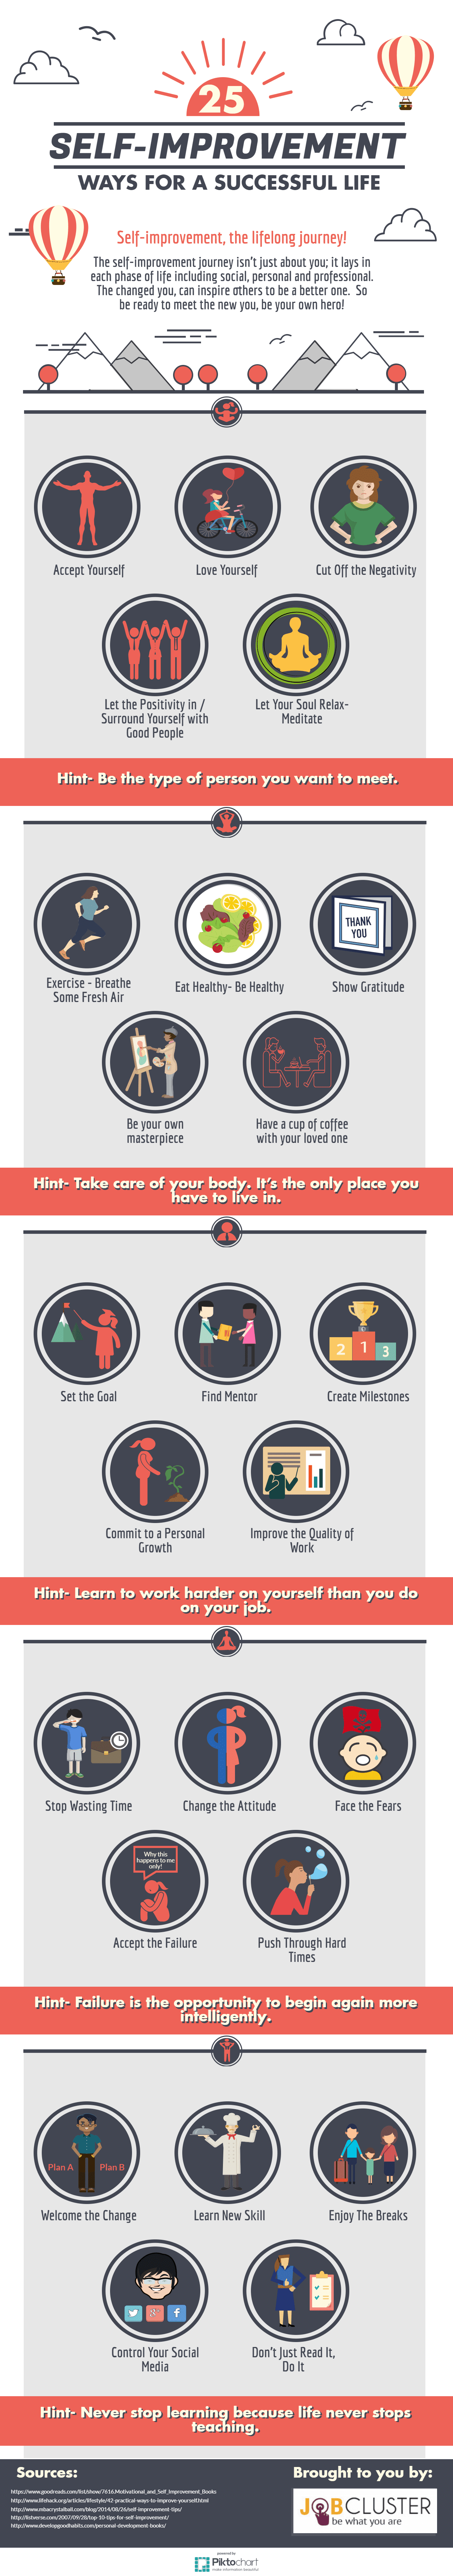 How to Continually Upgrade to Better Versions of Yourself: 25 Self-Improvement Tips - Infographic